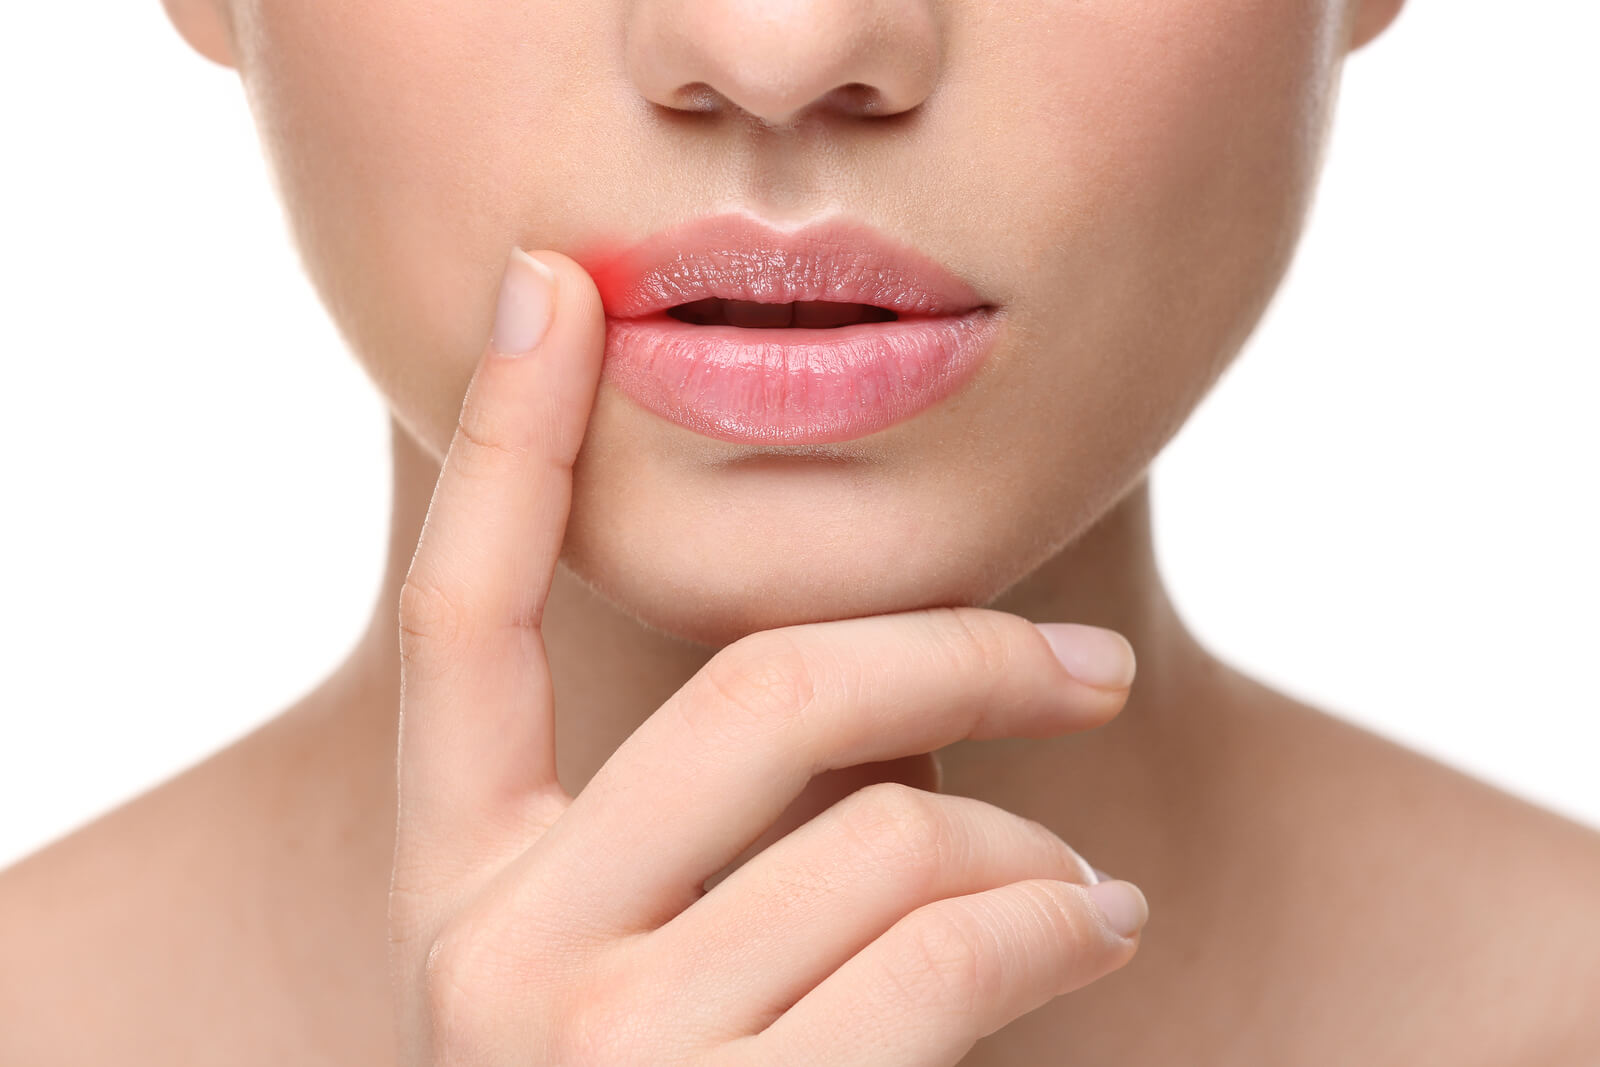 How To Get Rid Of Cold Sores Fast